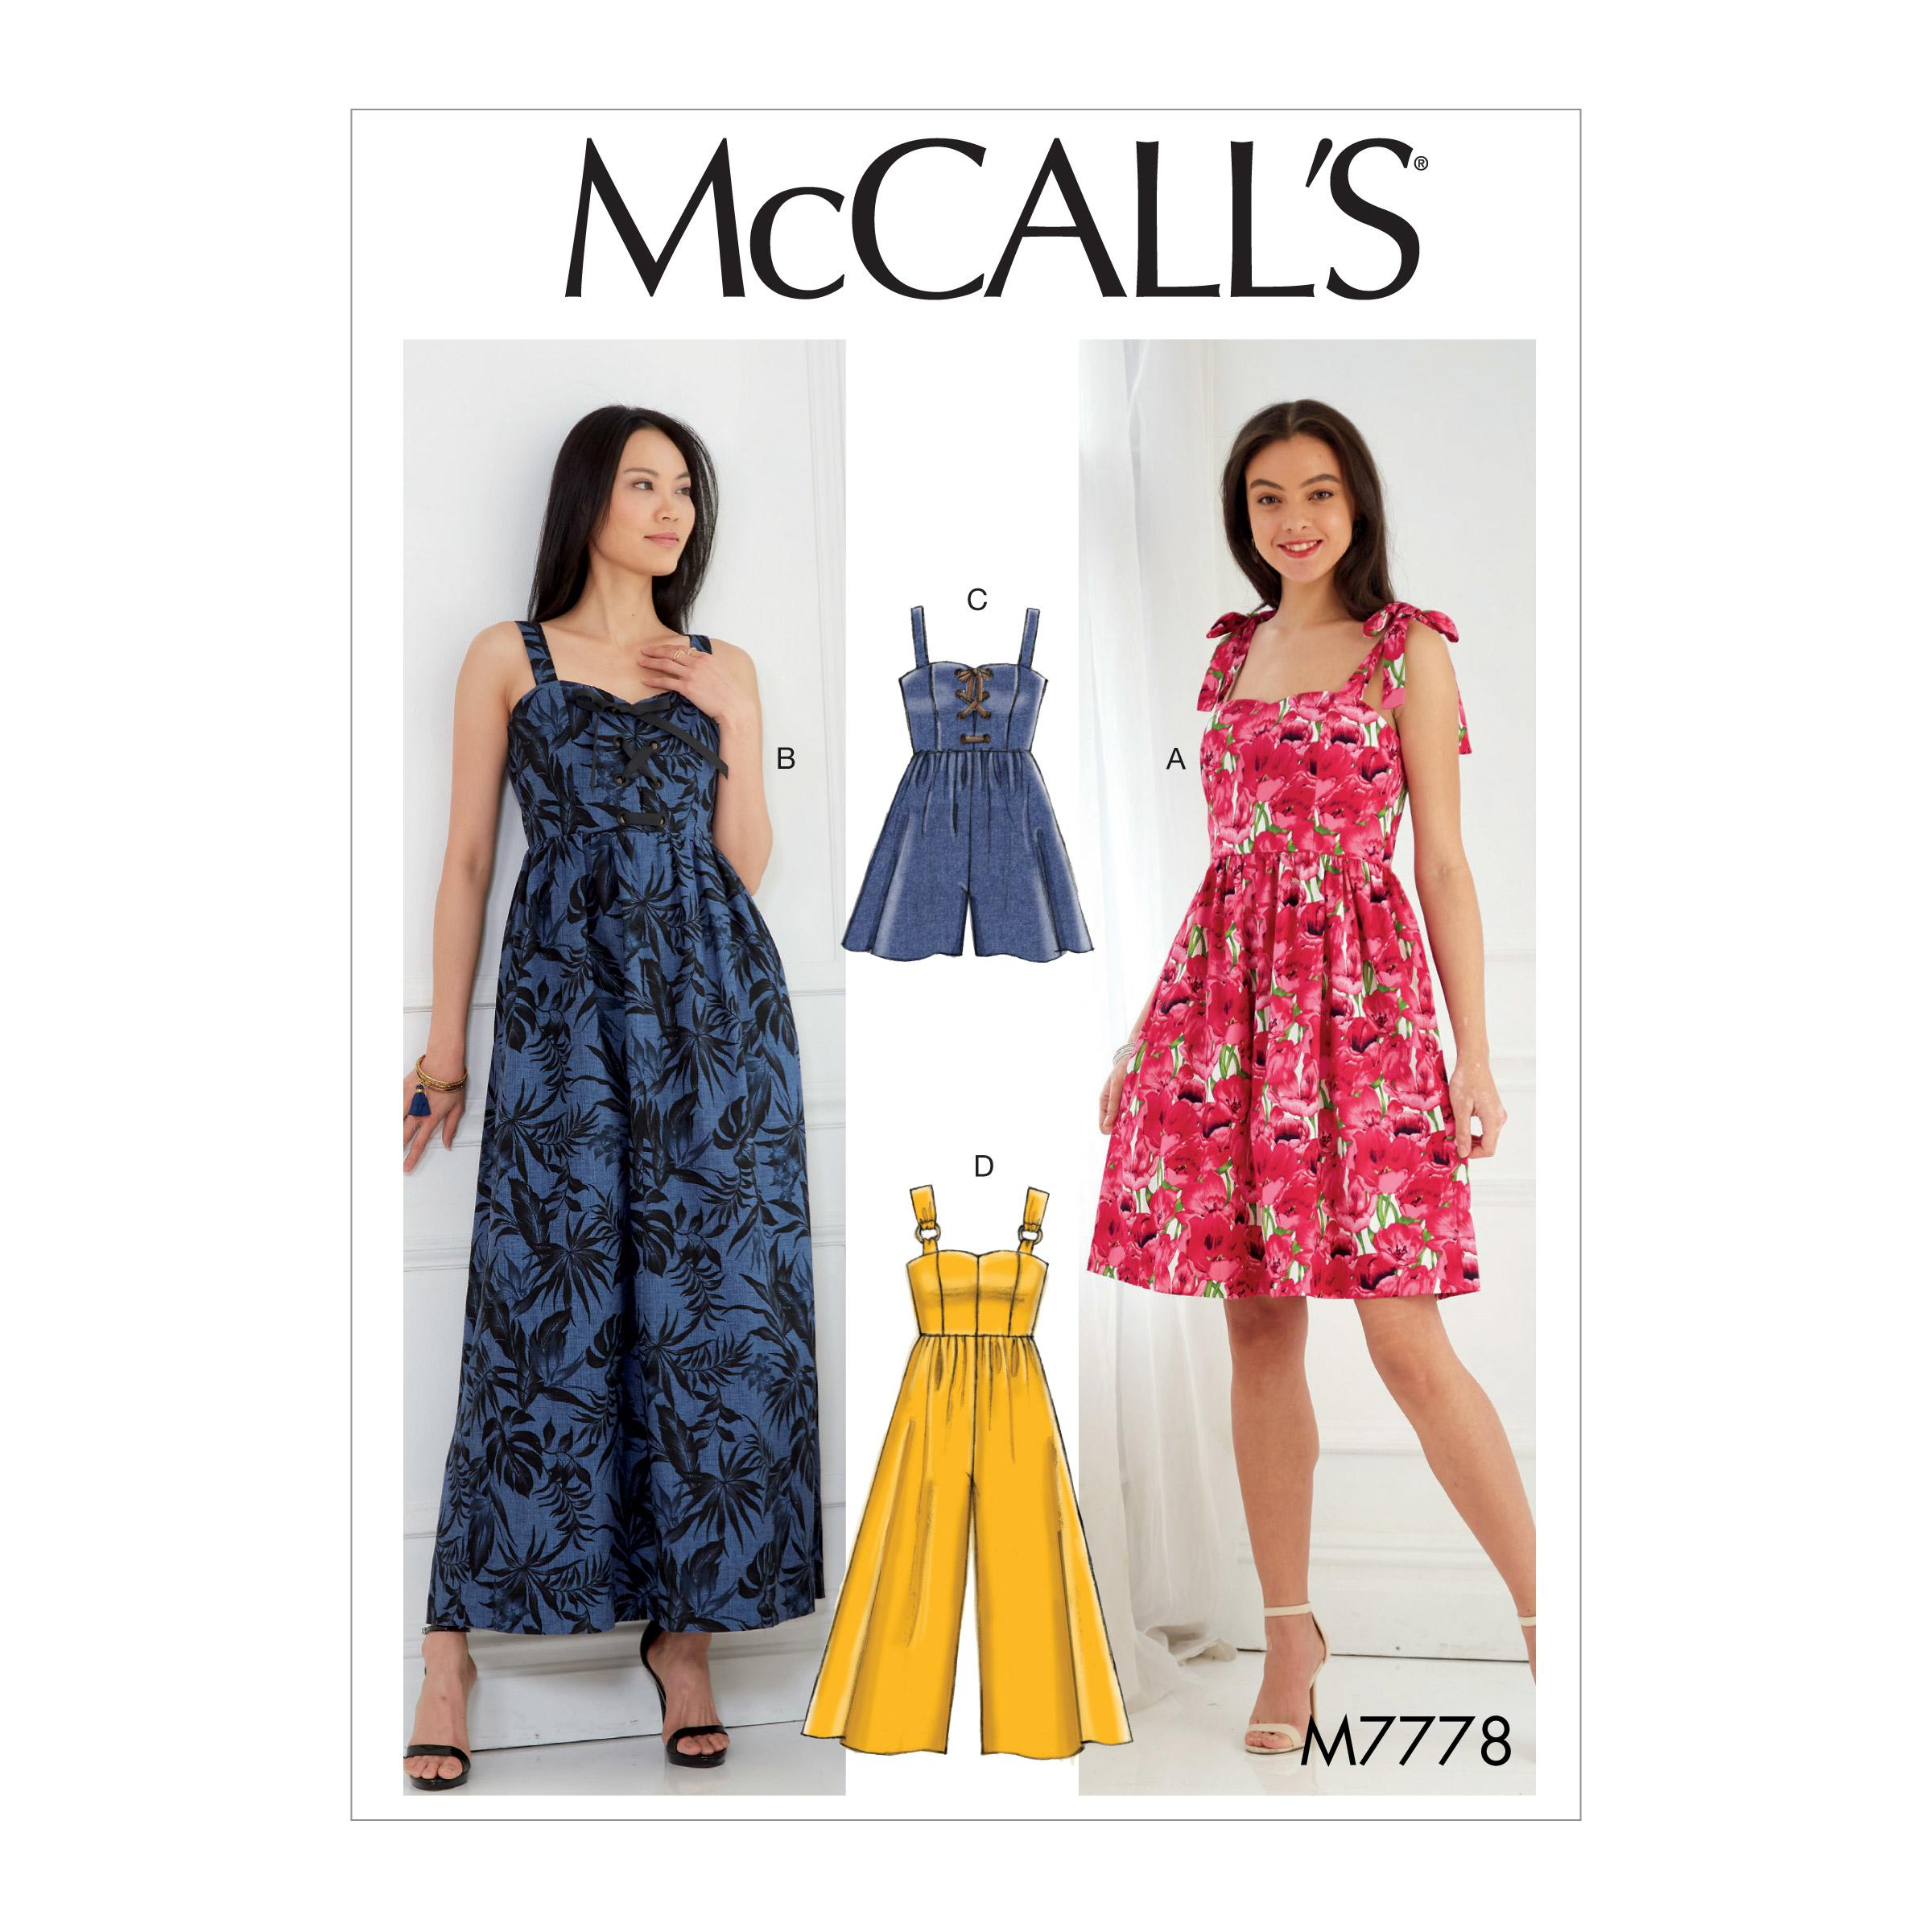 McCalls M7778 Misses Dresses, Misses Pants, Jumpsuits & Shorts